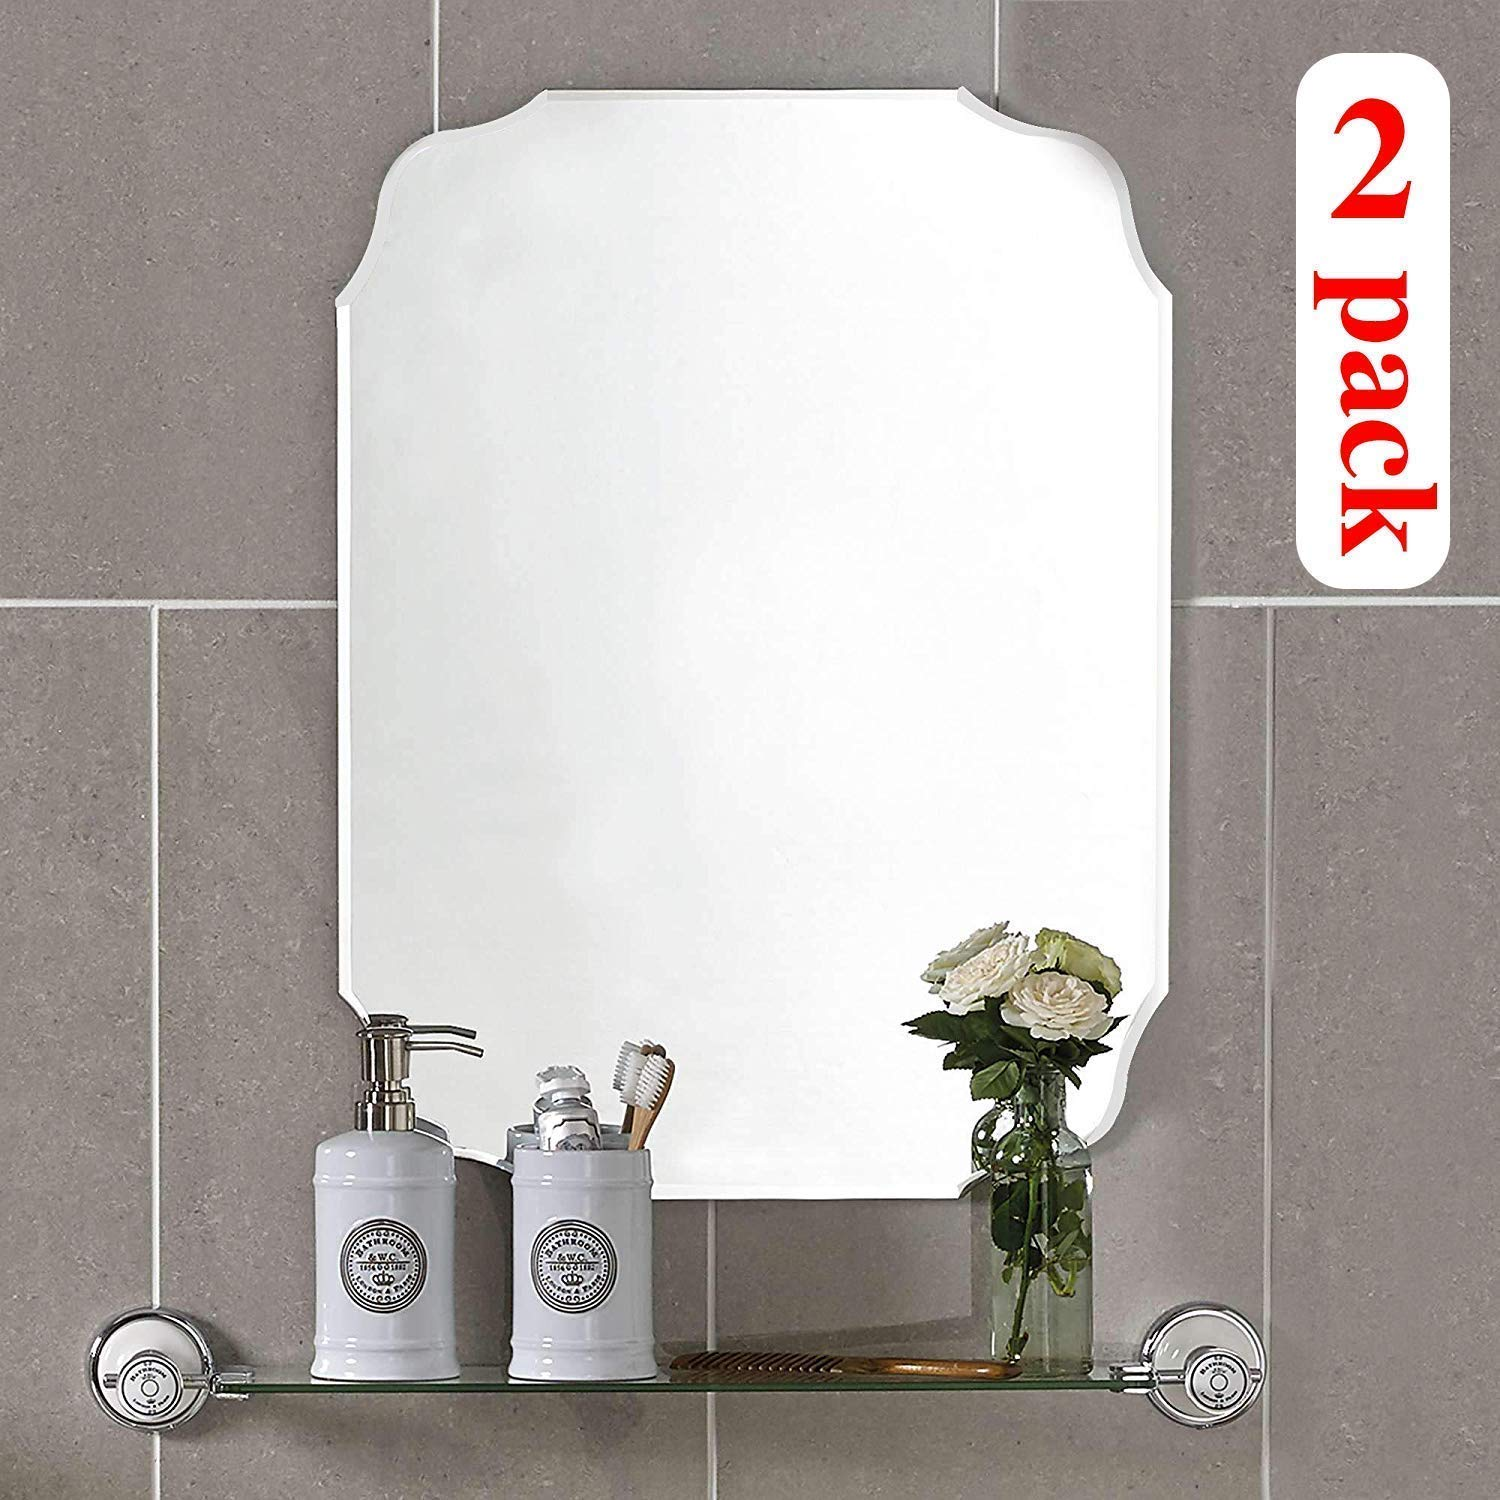 KOHROS Oval Beveled Polished Frameless Wall Mirror for Bathroom, Vanity, Bedroom (18'' W x 24'' H Rectangular 2 Pack) by KOHROS